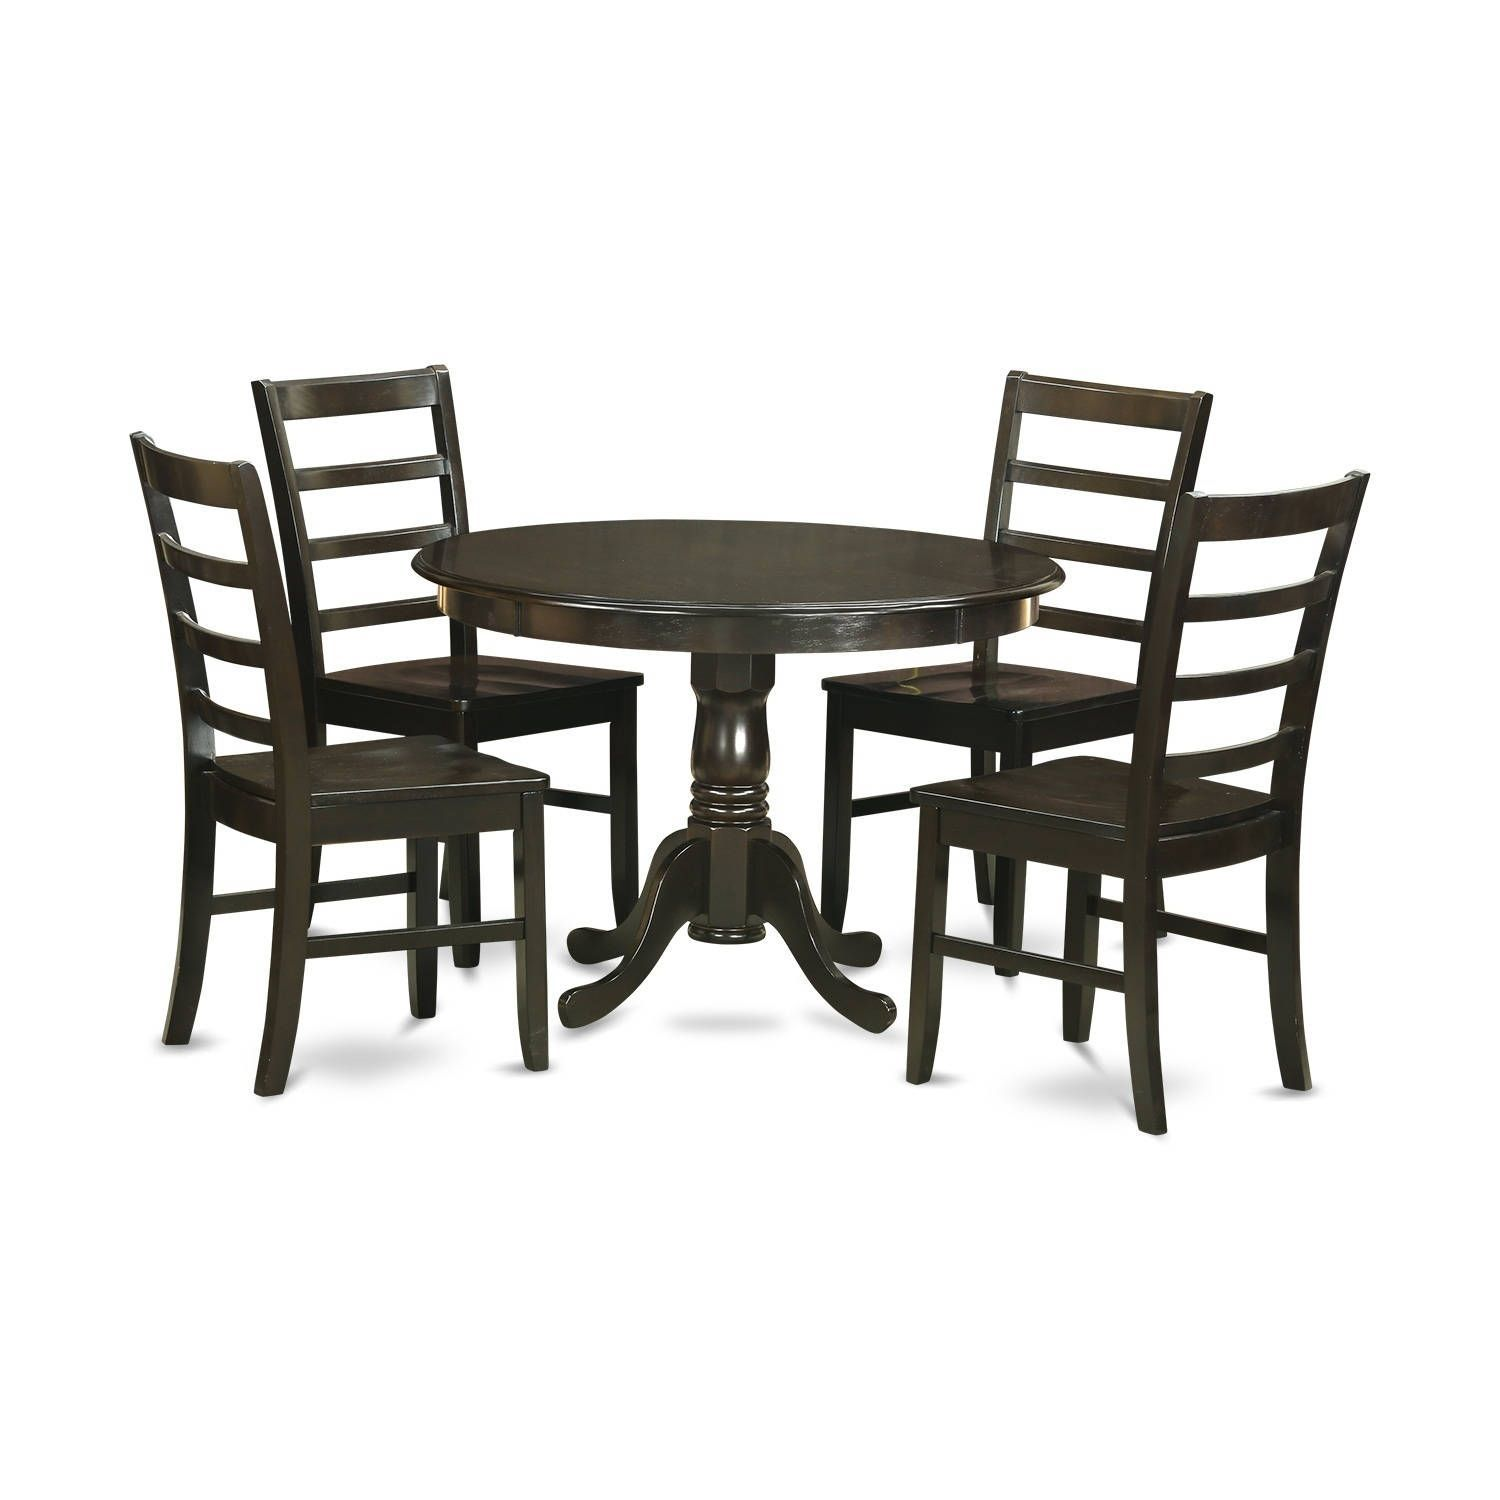 HLPF5-CAP 5 PC small Kitchen Table set-Dining Table and 4 Chairs ...